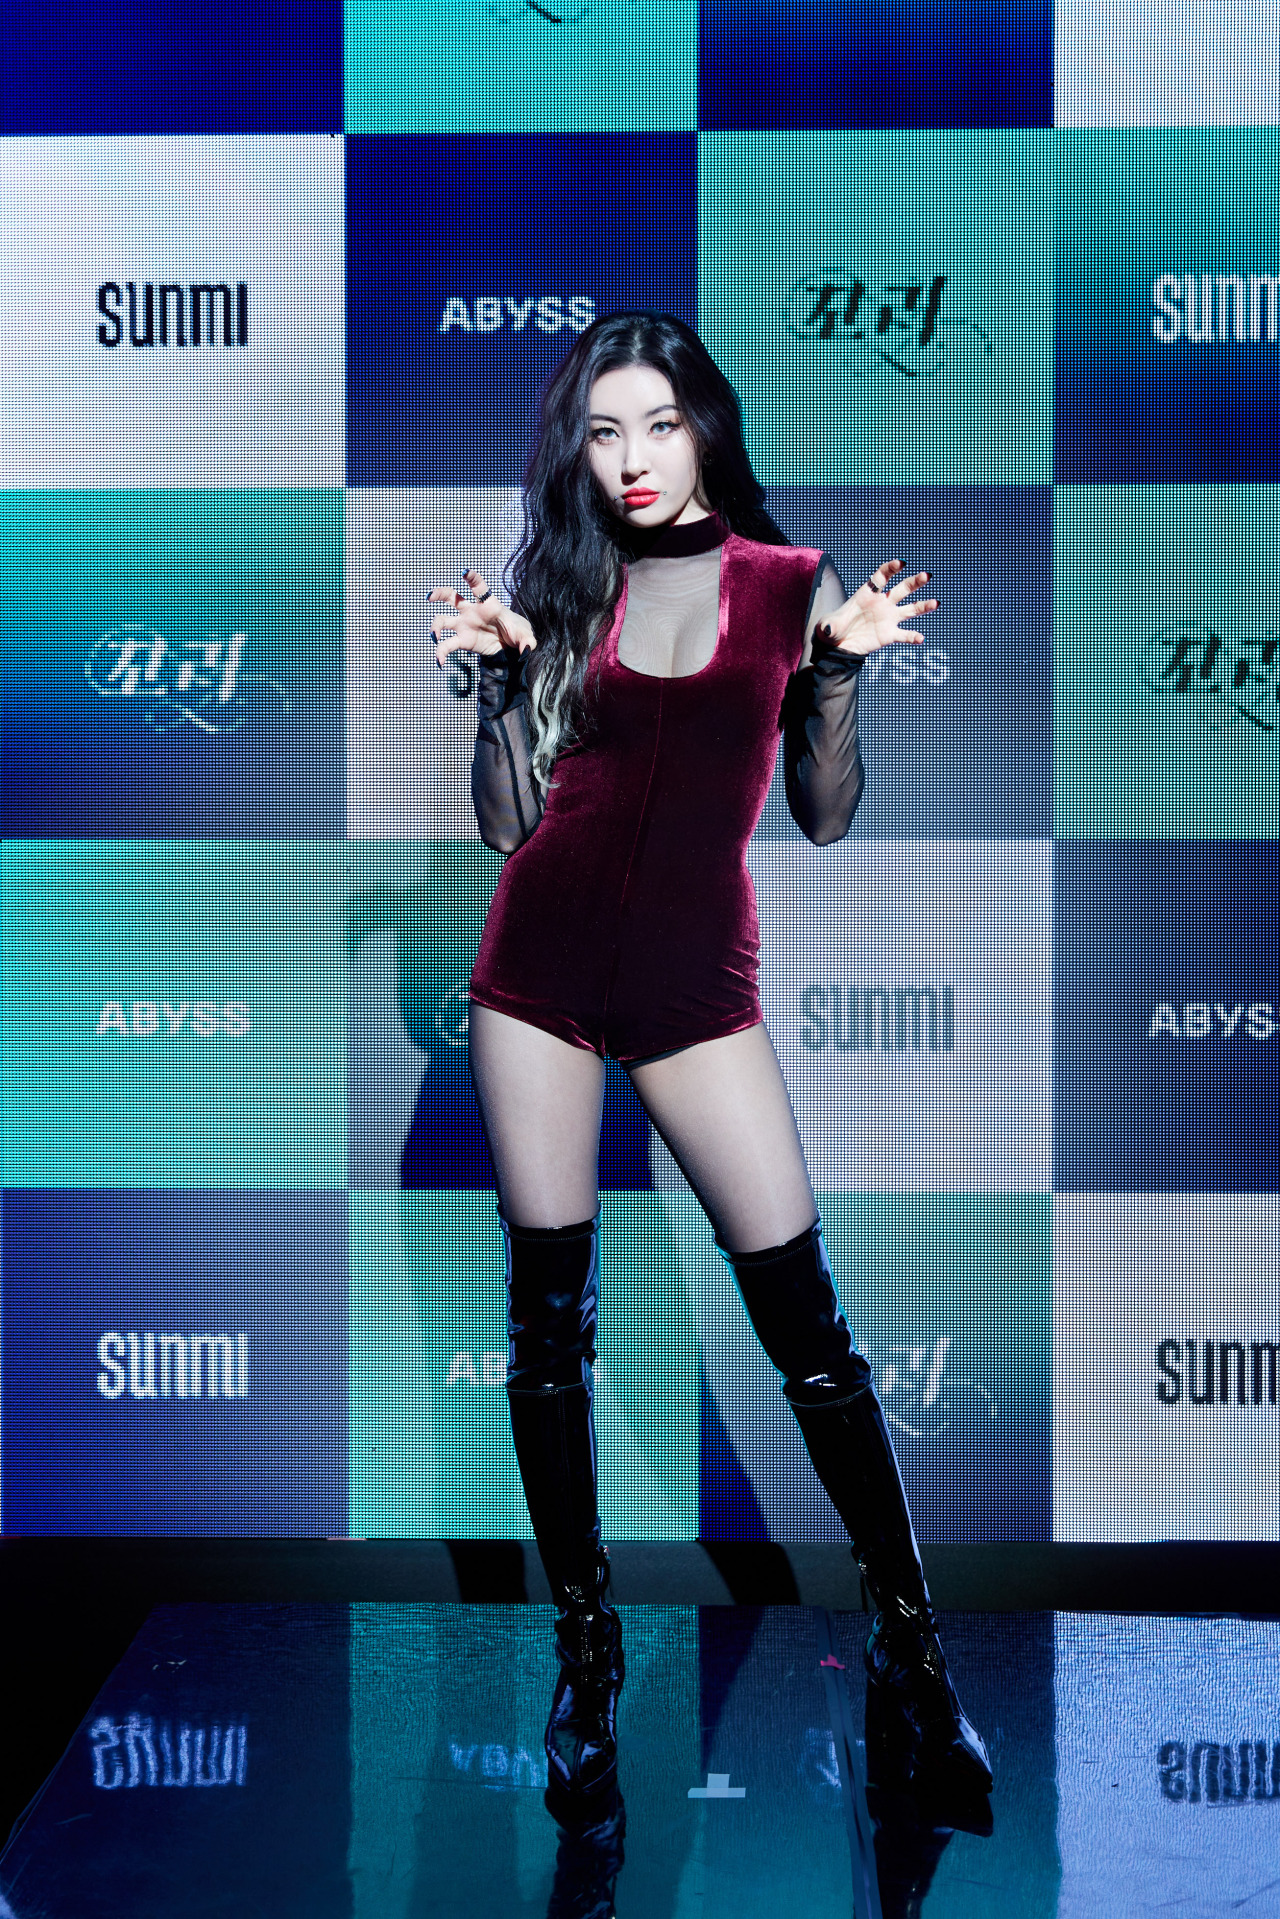 Sunmi poses for picture before press conference conducted in Seoul on Tuesday. (Abyss Company)